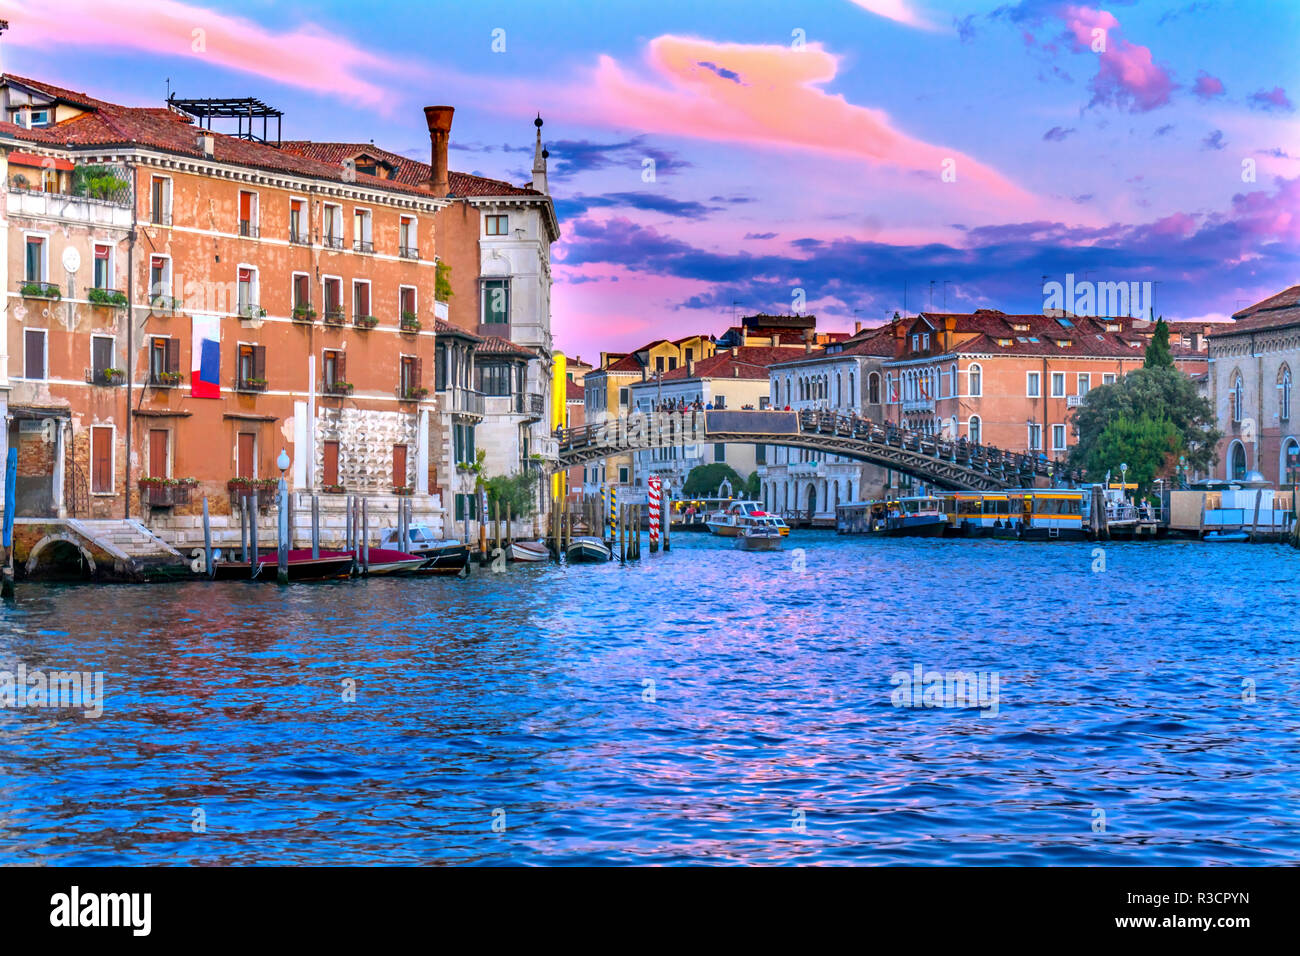 Colorful Ponte dell Academia Bridge. Sunset ferry docks, Grand Canal, Venice, Italy - Stock Image